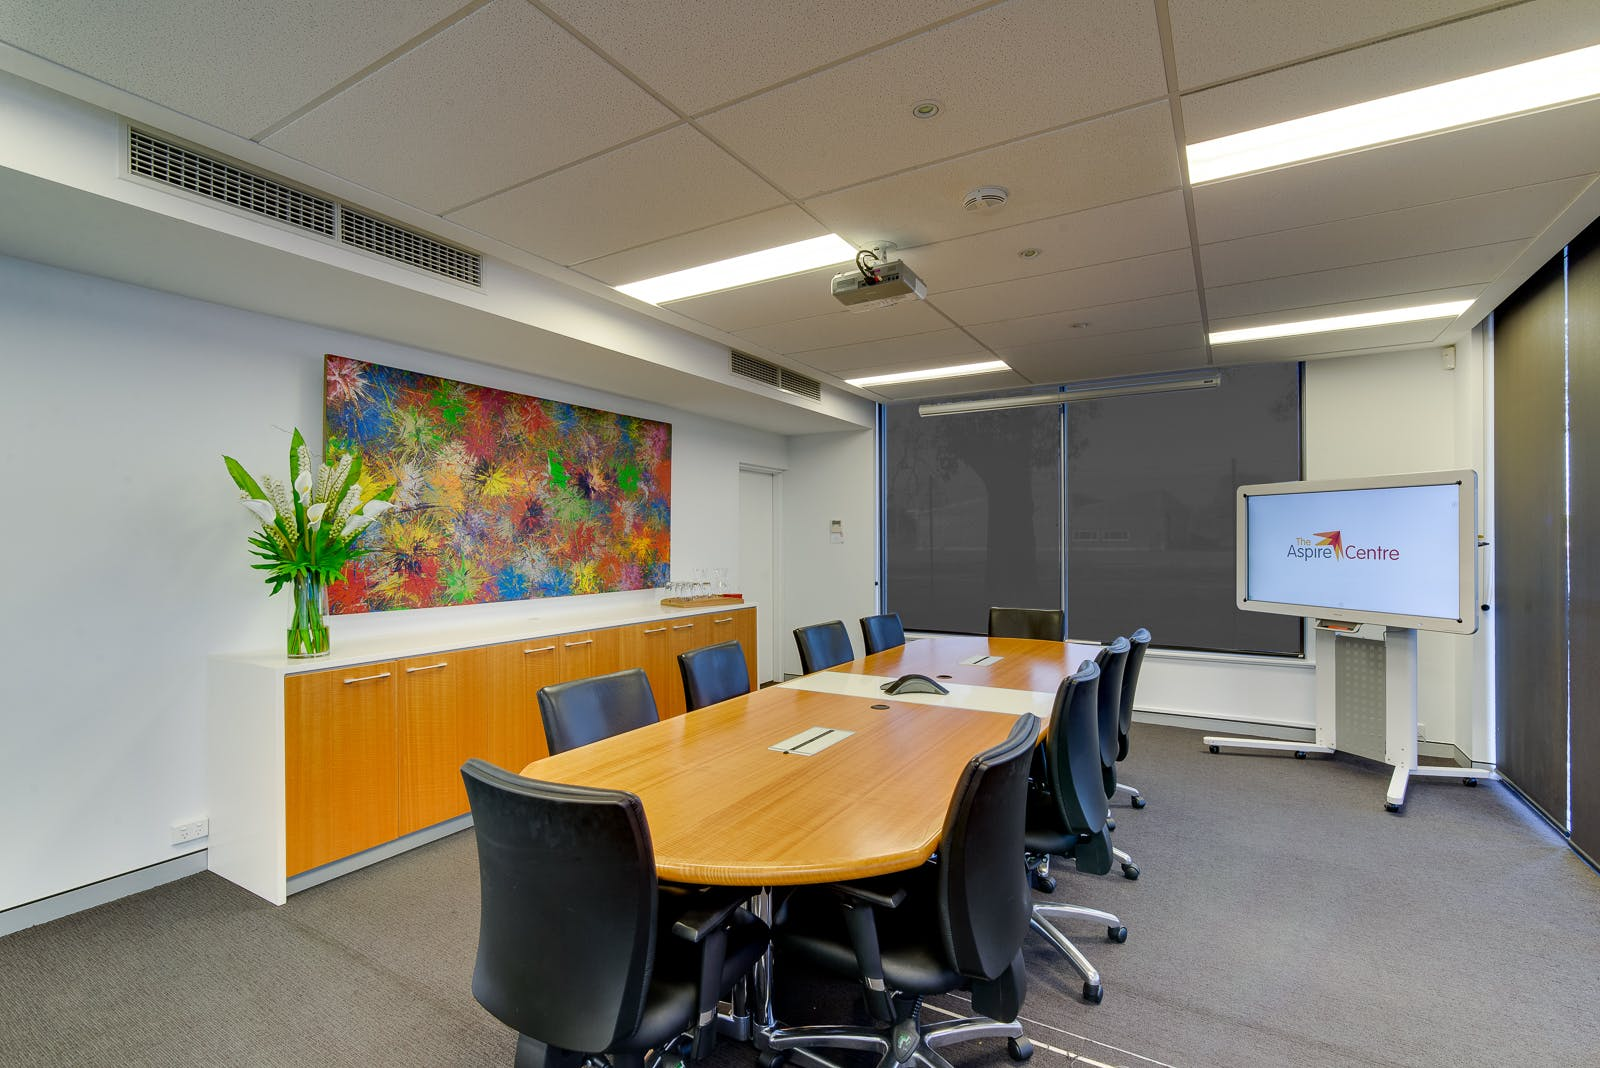 Boardroom, meeting room at The Aspire Centre, image 1